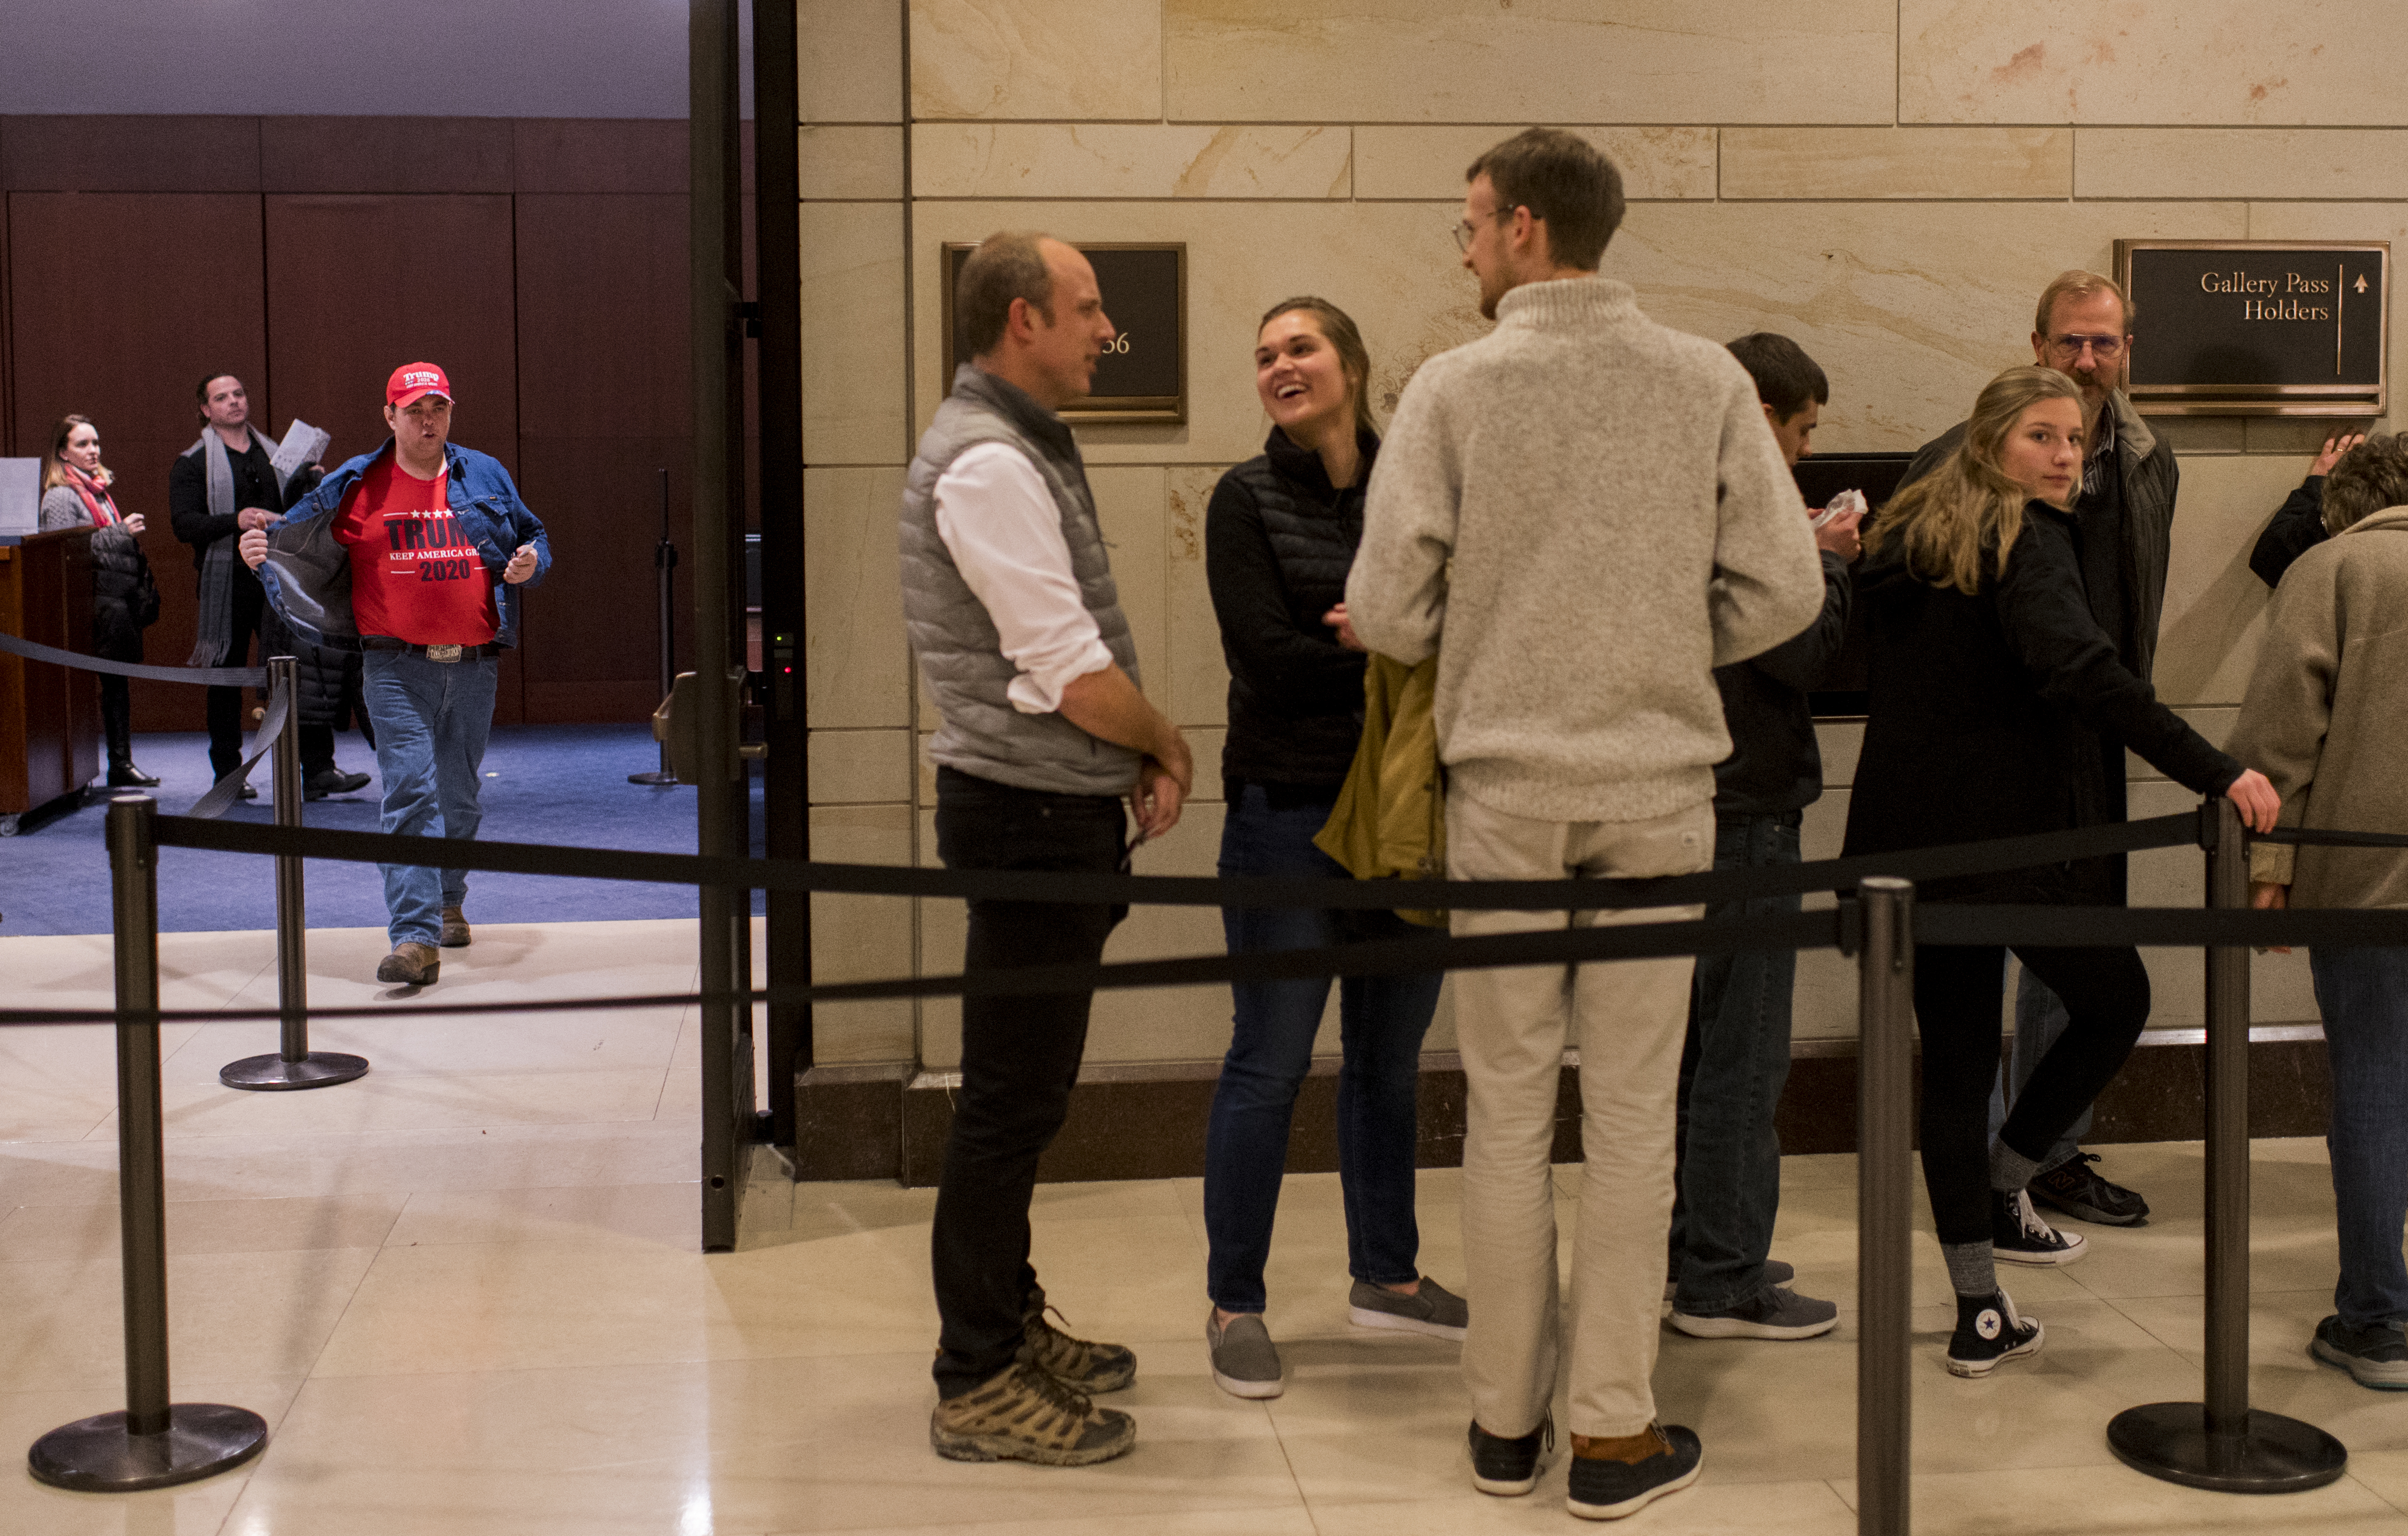 UNITED STATES - DECEMBER 18: Members of the public line up in the Capitol Visitor Center to go watch the House of Representatives articles of impeachment votes against President Donald Trump in the Capitol on Wednesday, Dec. 18, 2019. (Photo By Bill Clark/CQ Roll Call)